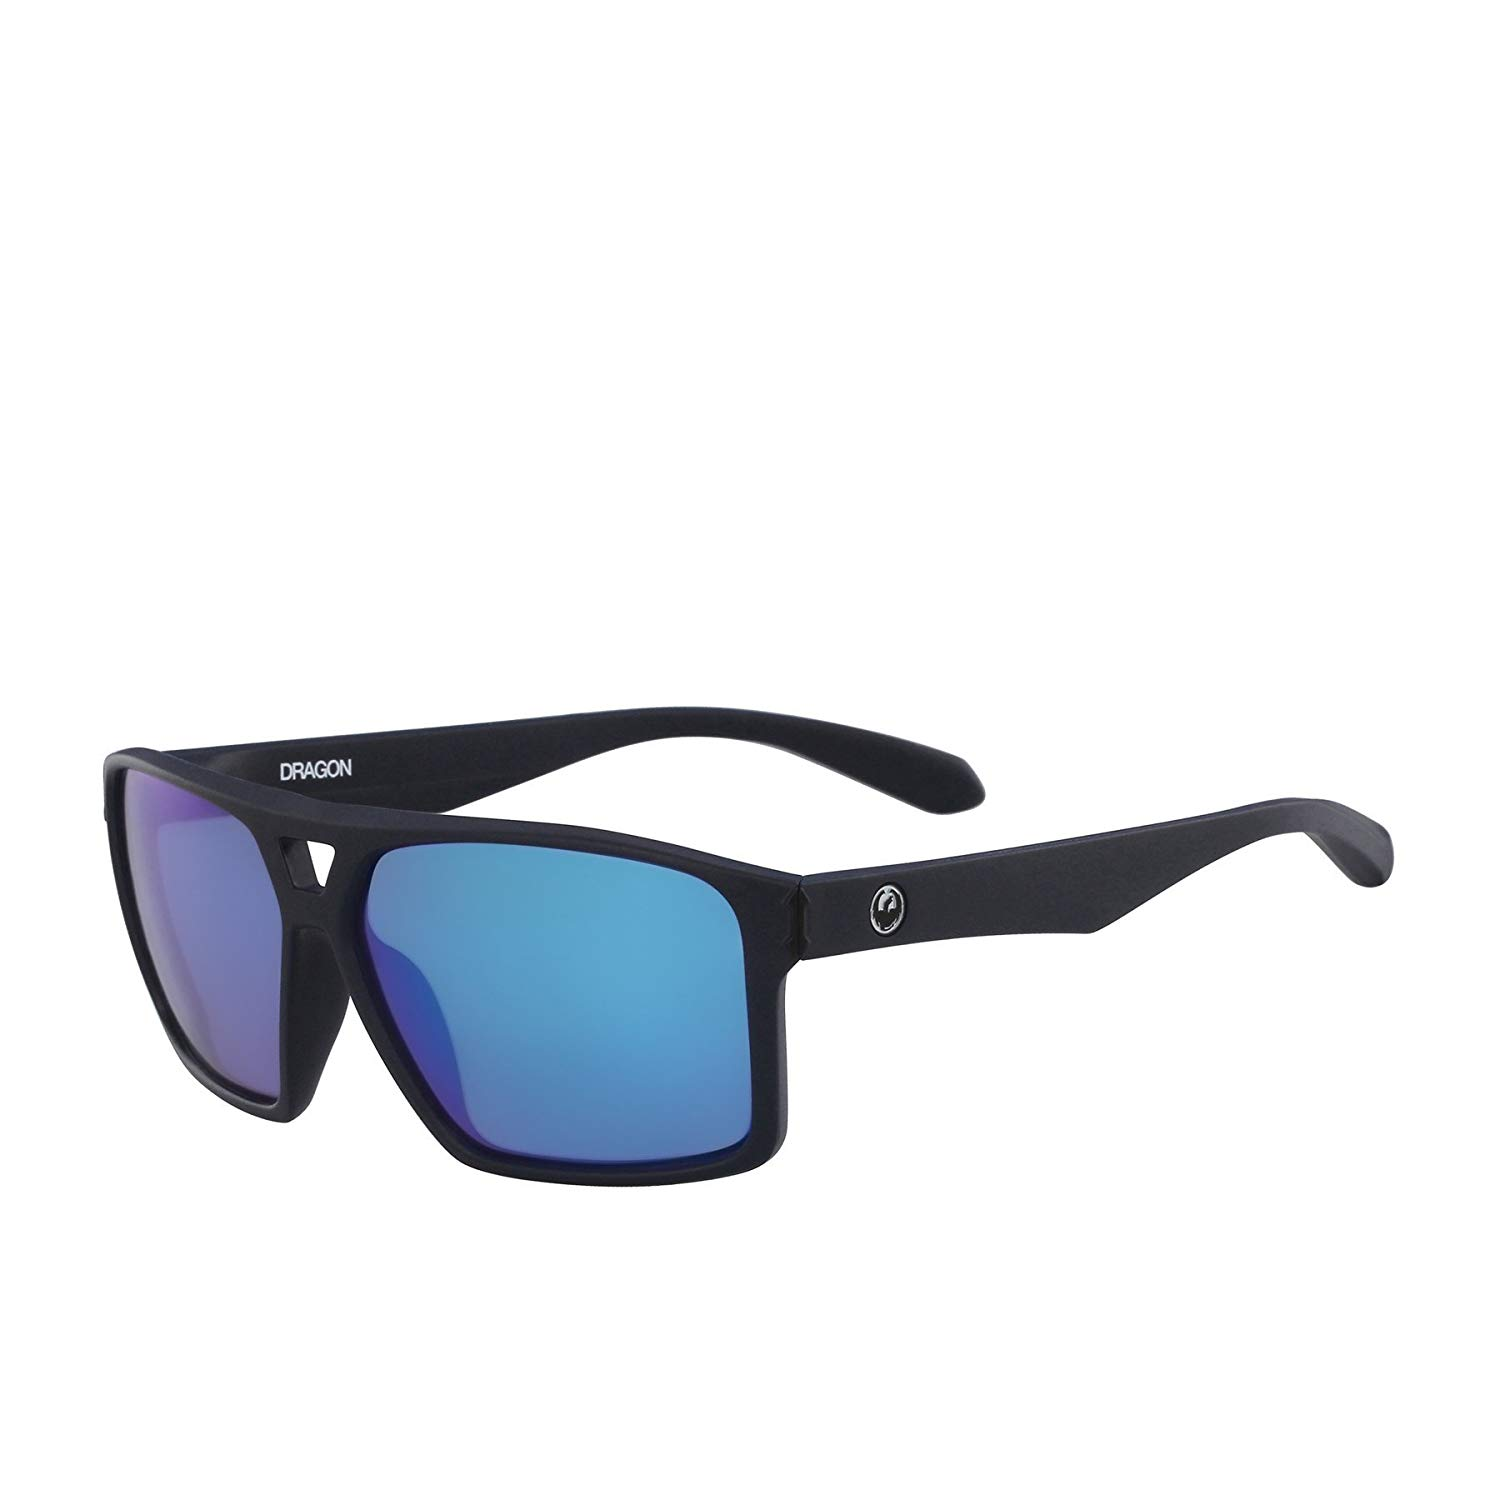 e450704ff6 Get Quotations · Dragon Channel Matte Deep Navy Sunglasses One Size Blue  Ionized